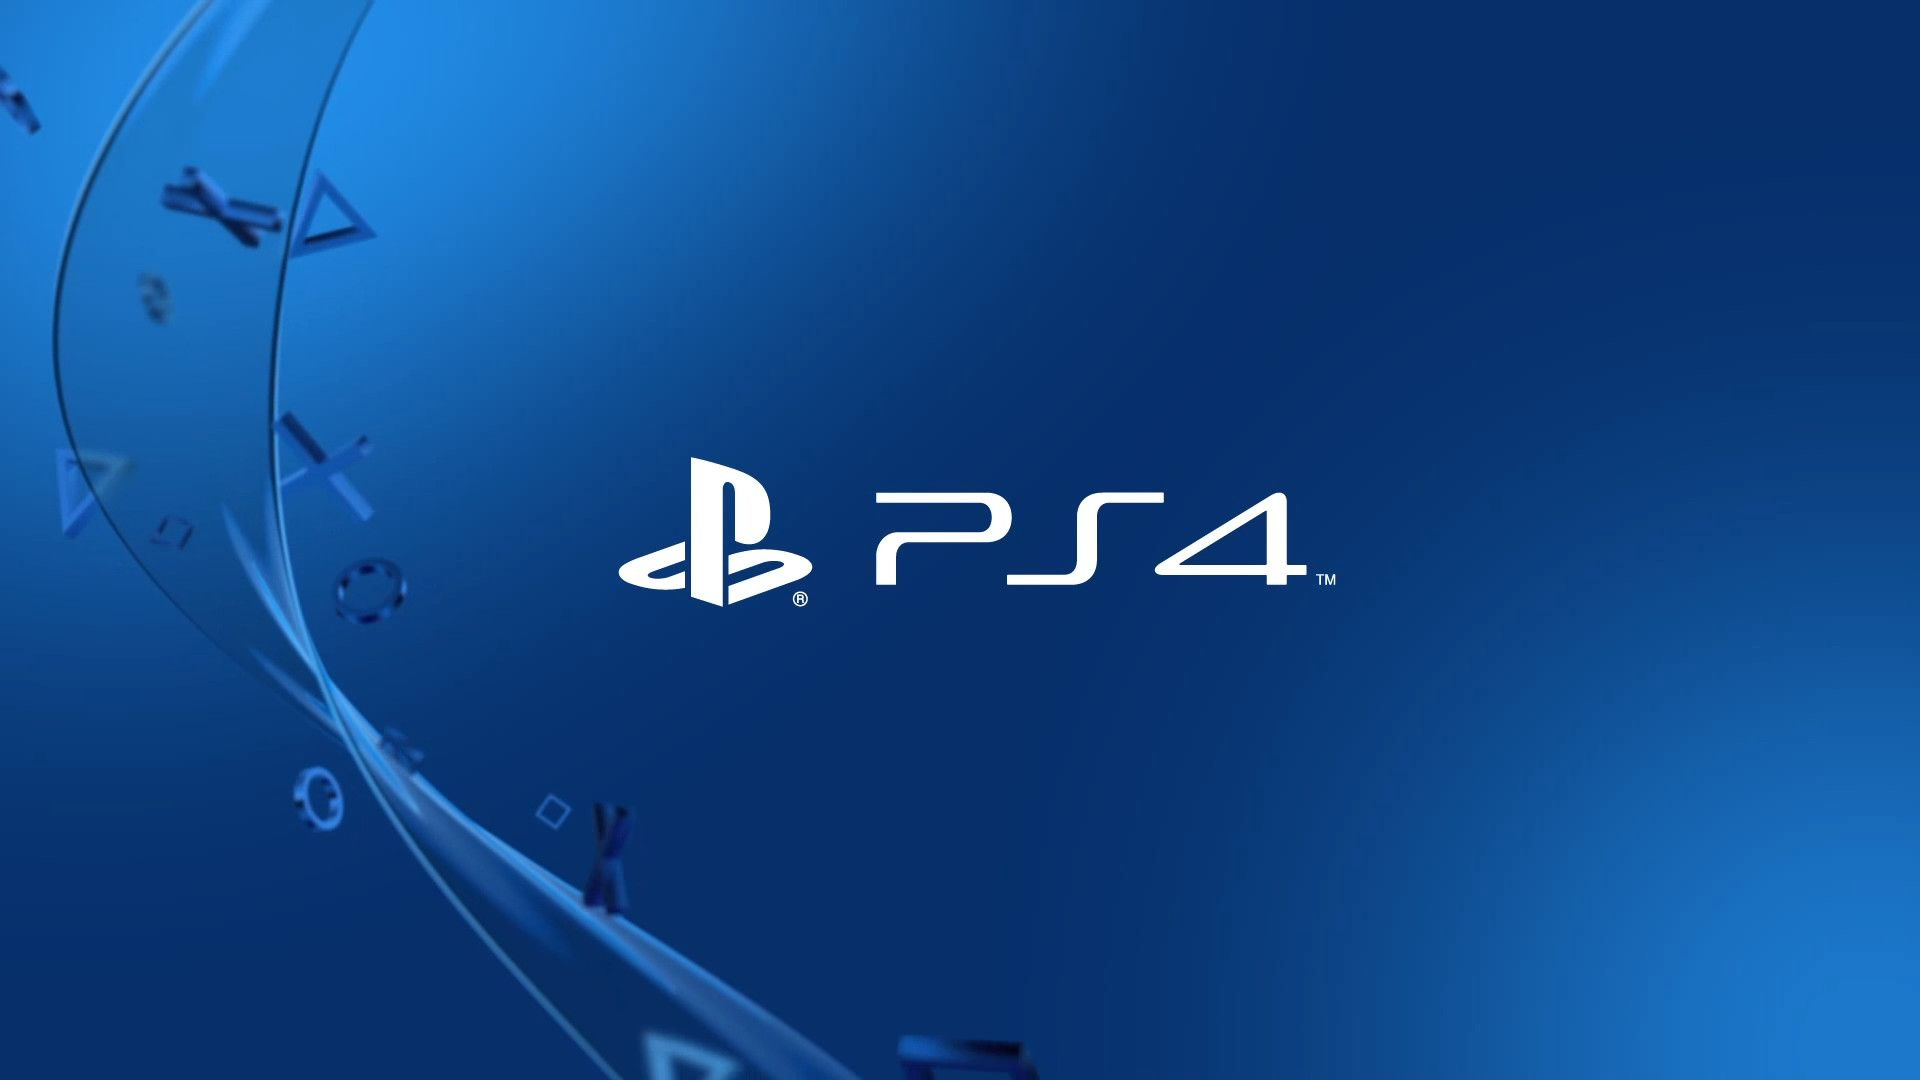 Ps4 Wallpapers Top Free Ps4 Backgrounds Wallpaperaccess